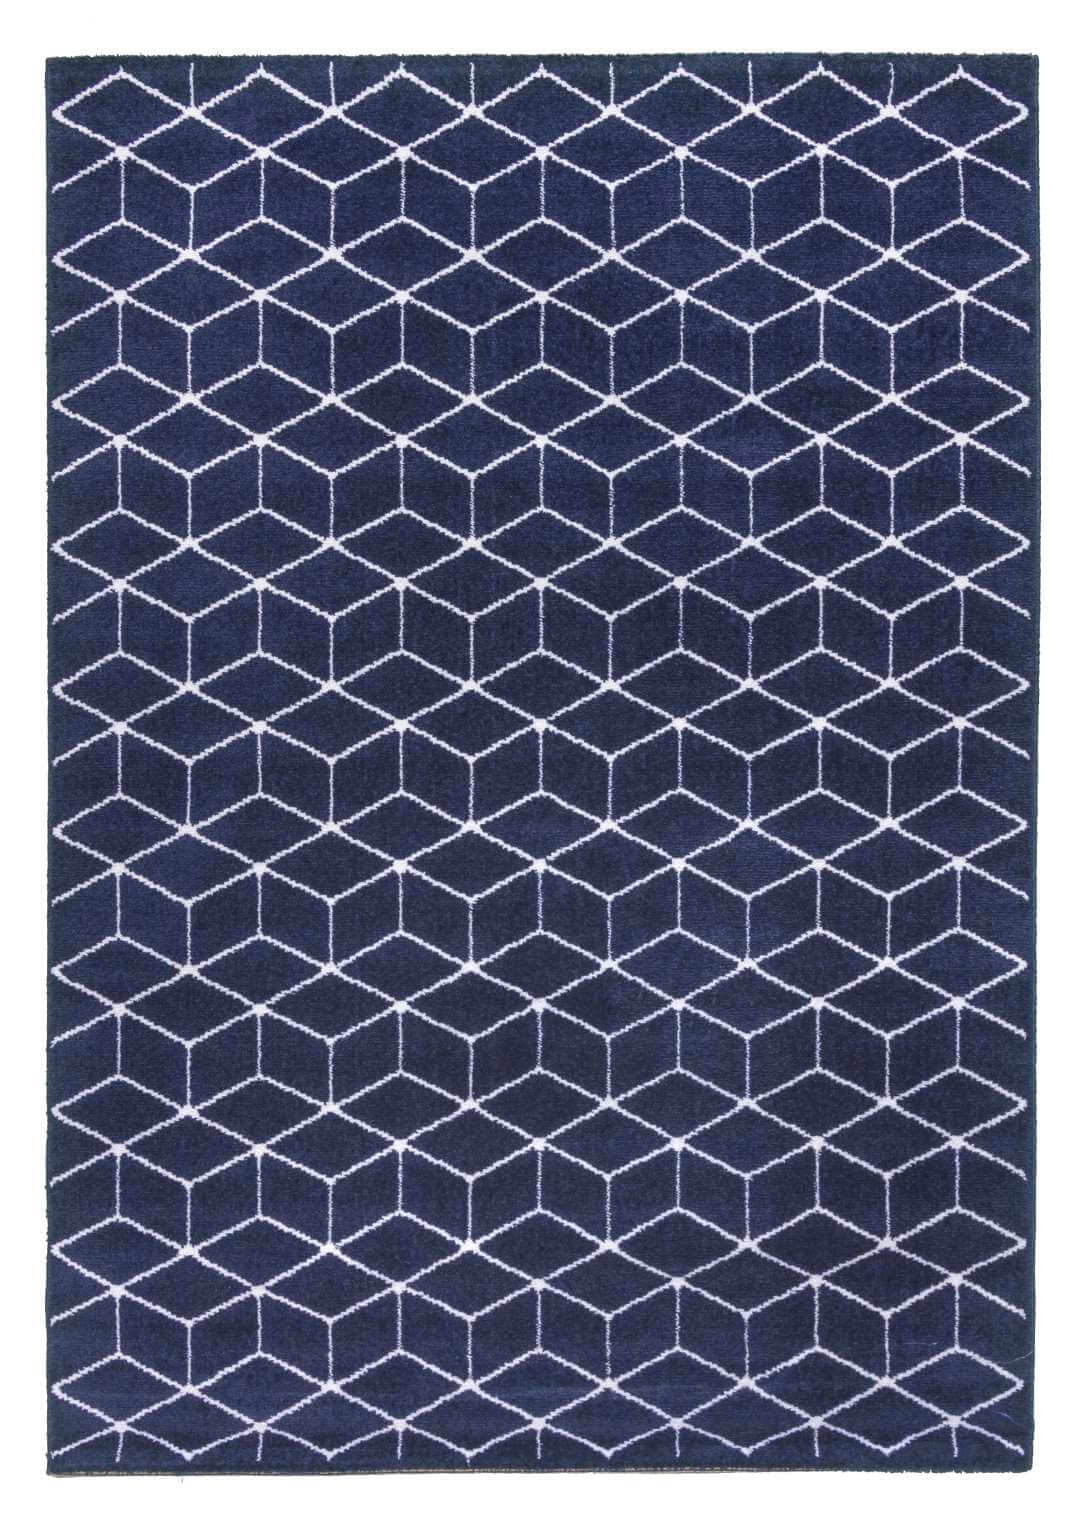 Ambience-Cube-Navy-Blue-Large-1